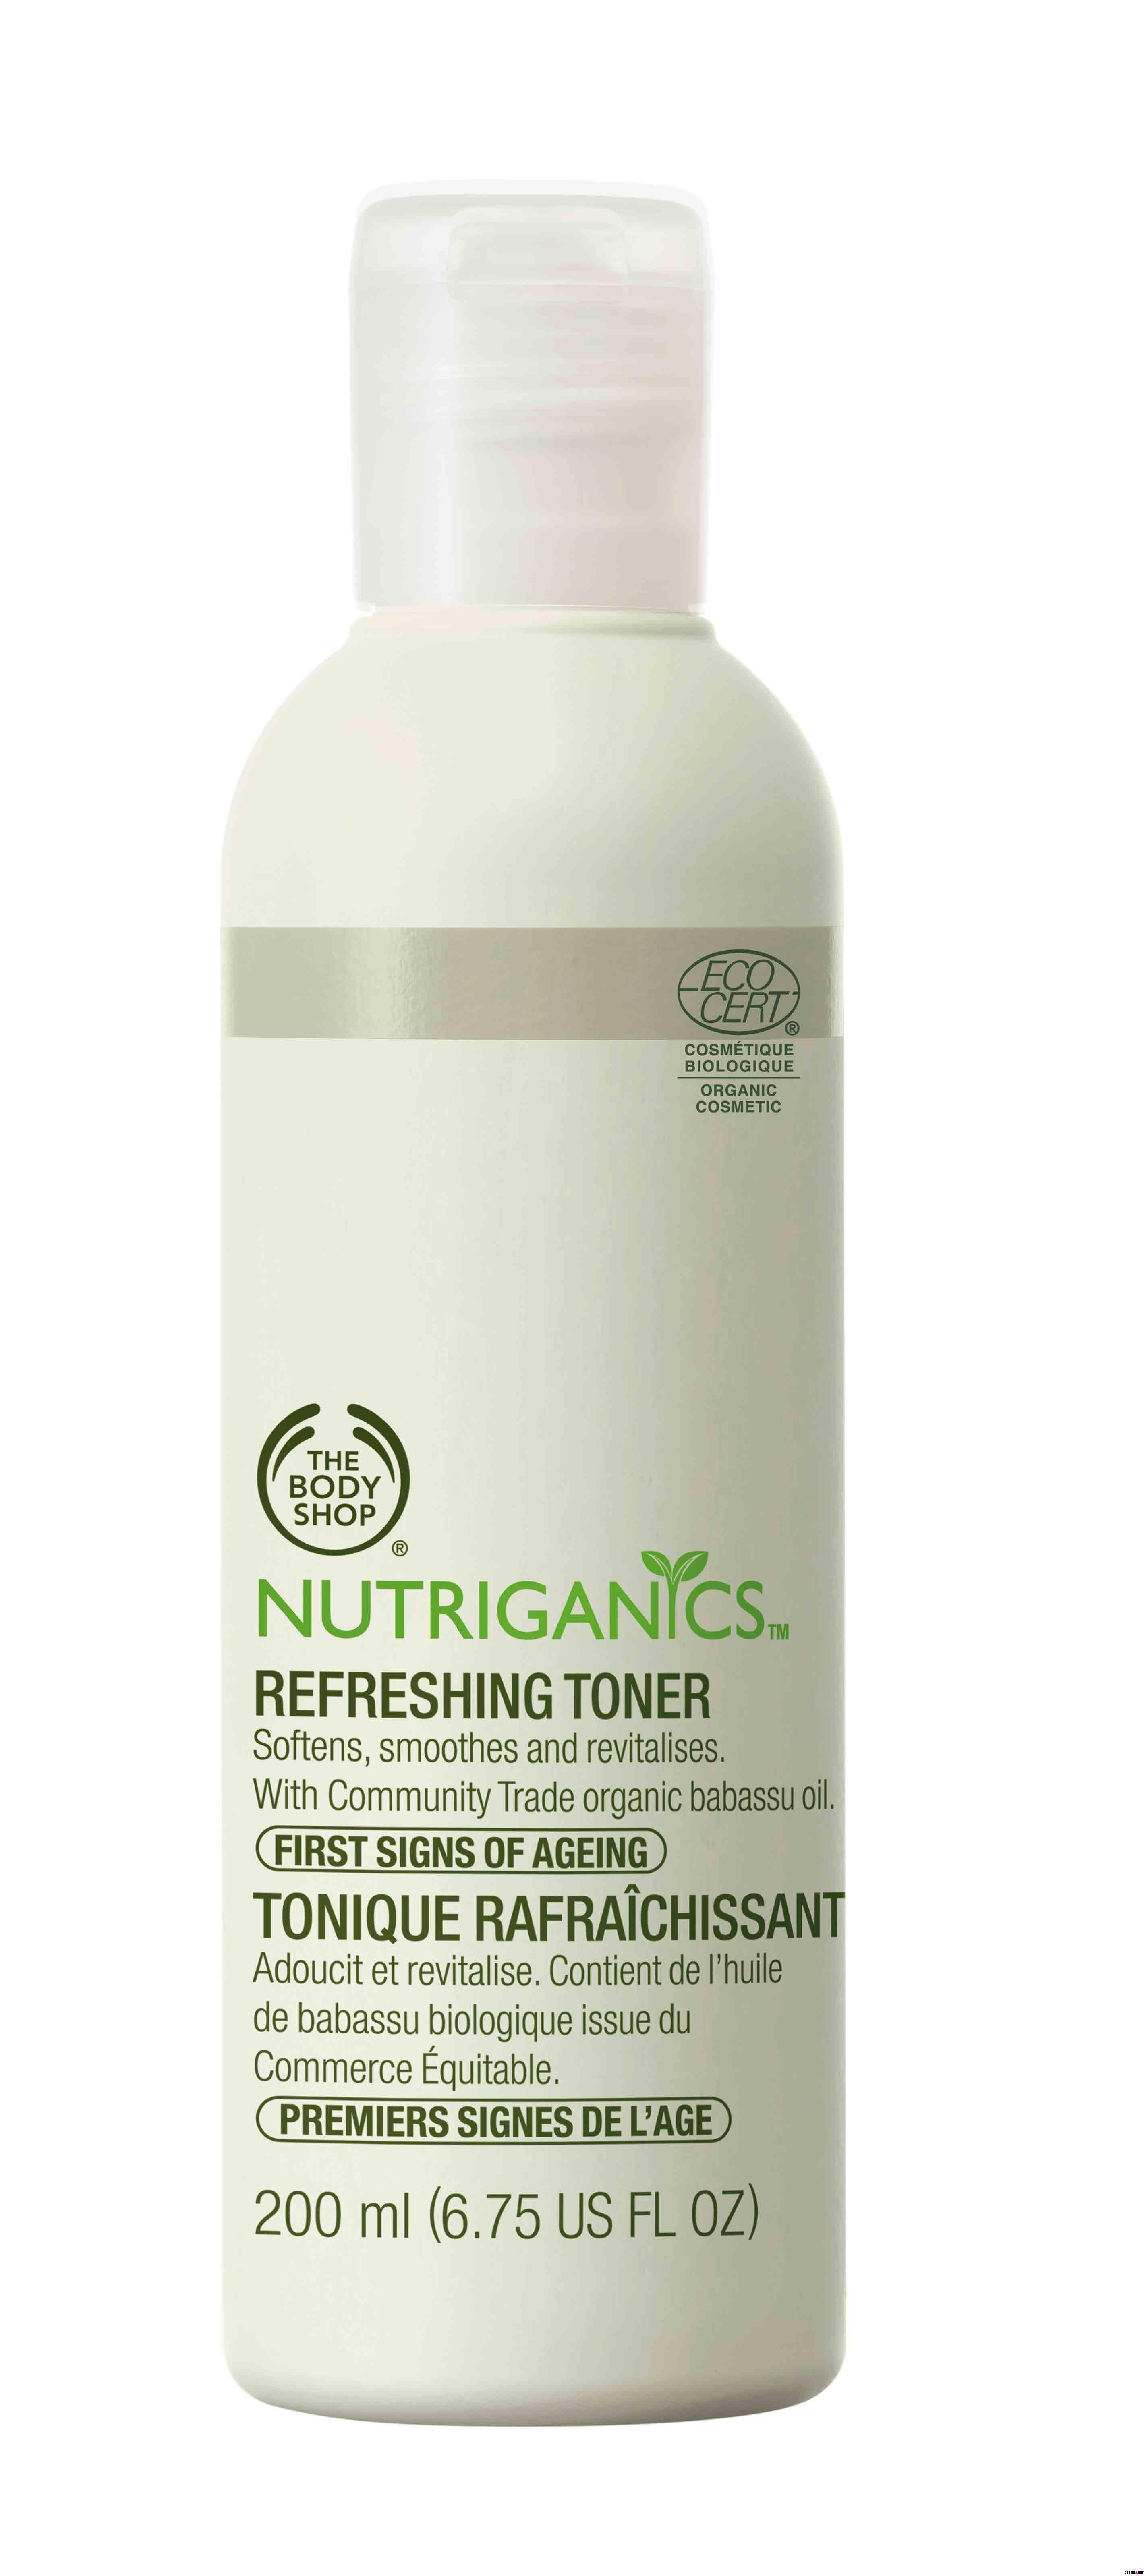 Nutriganics Refreshing Toner